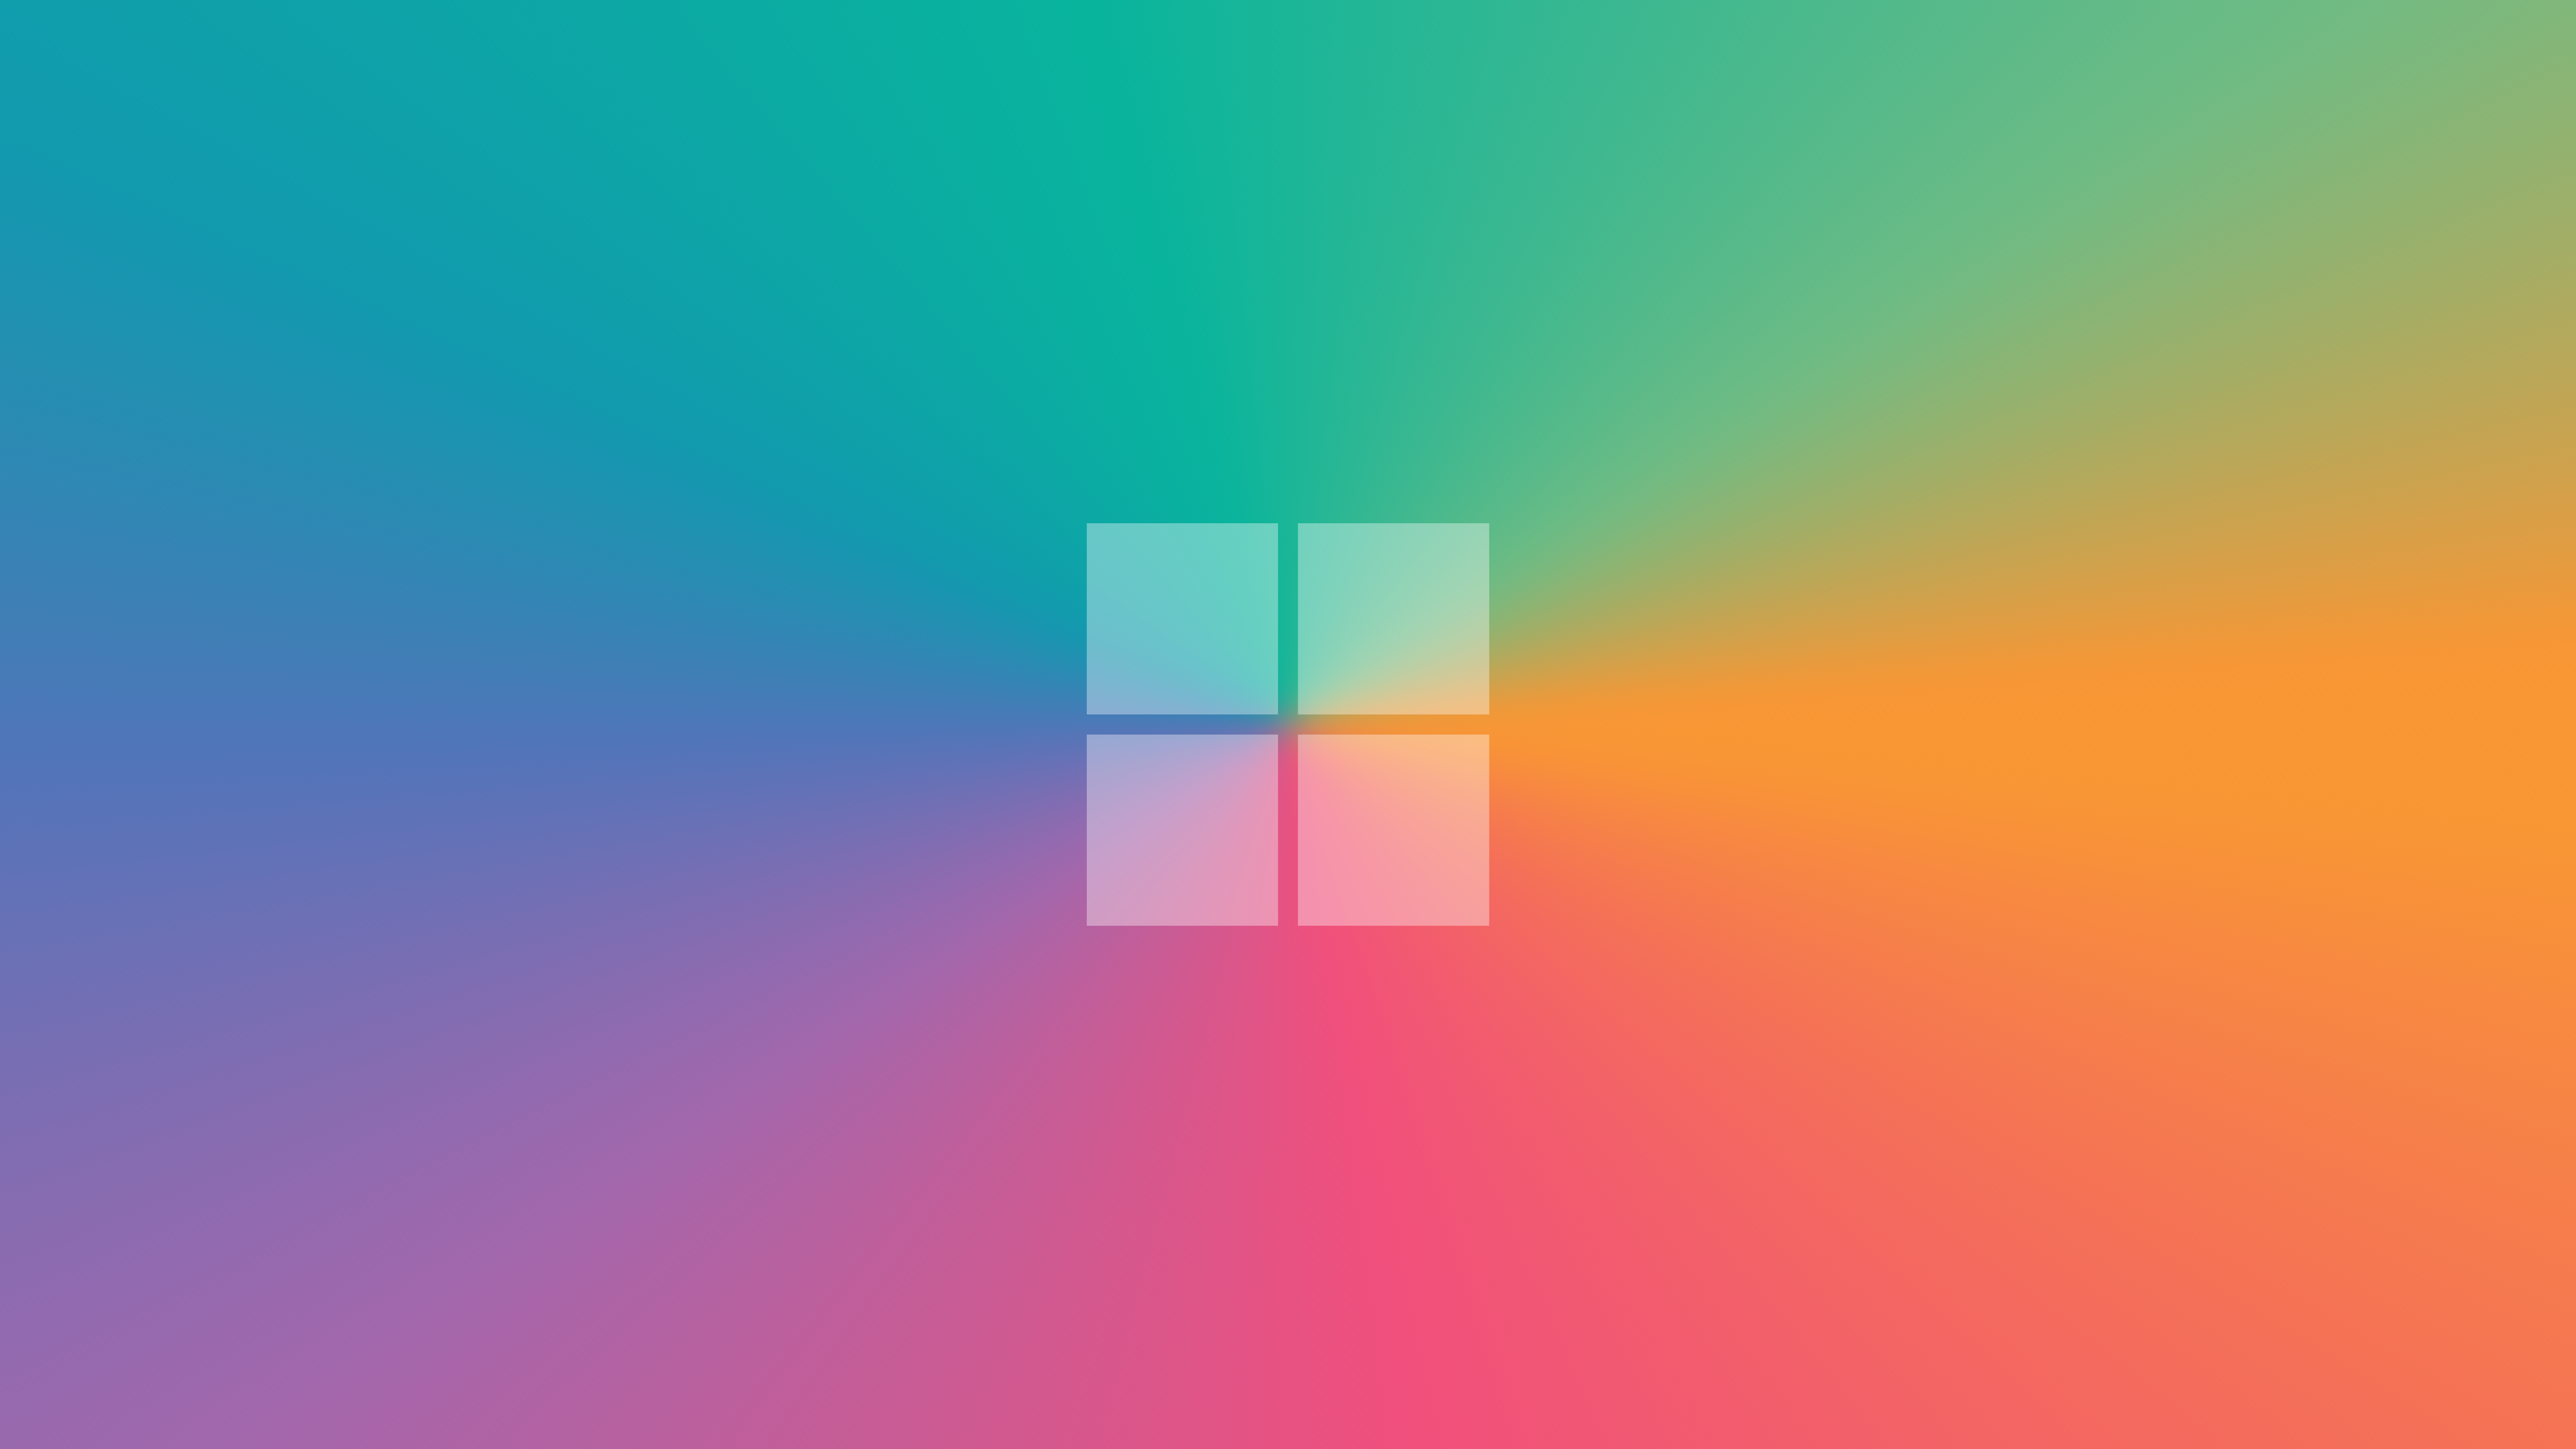 Free Download A Clean Colourful Windows 10 Inspired Wallpaper Majn